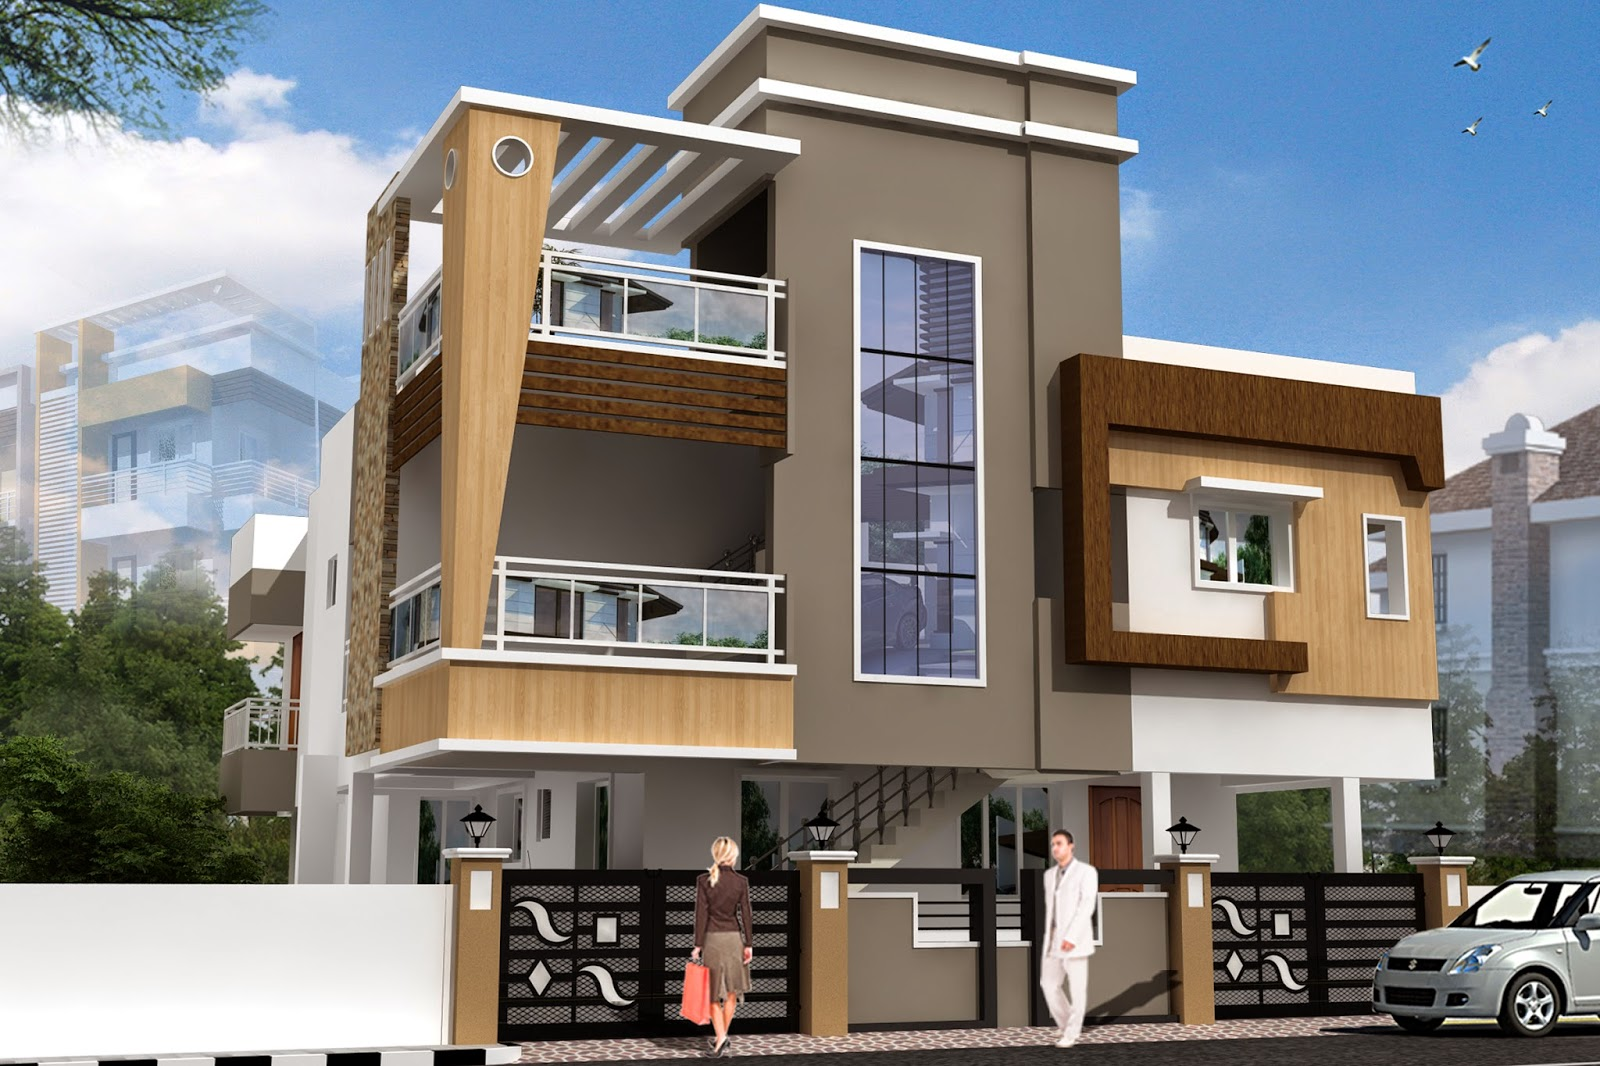 Residential building elevation joy studio design gallery for Best elevations residential buildings